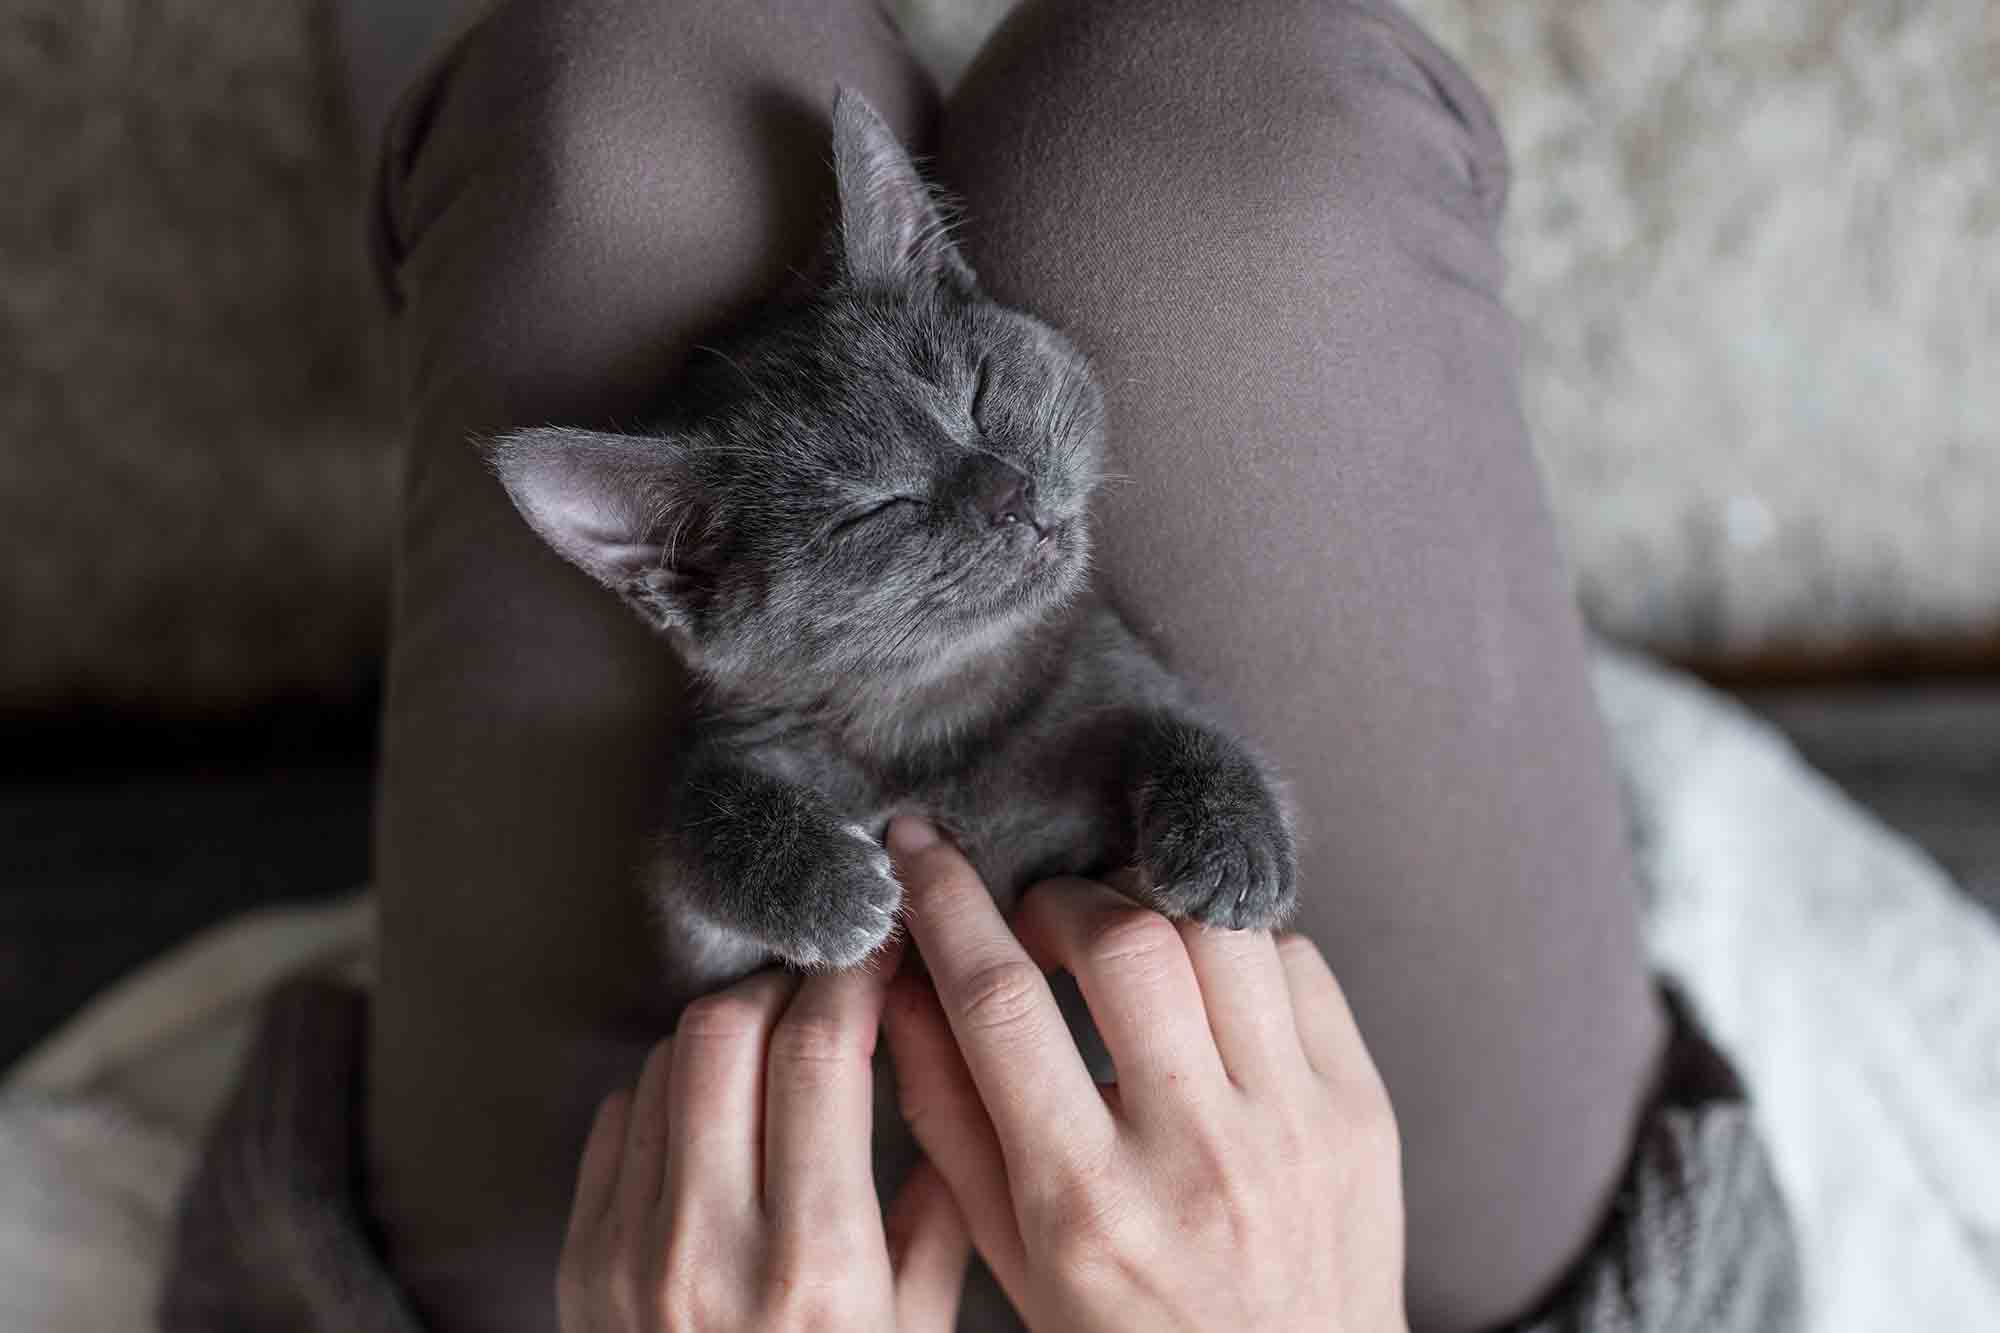 Relaxed And Happy Cat Laying In A Human's Lap